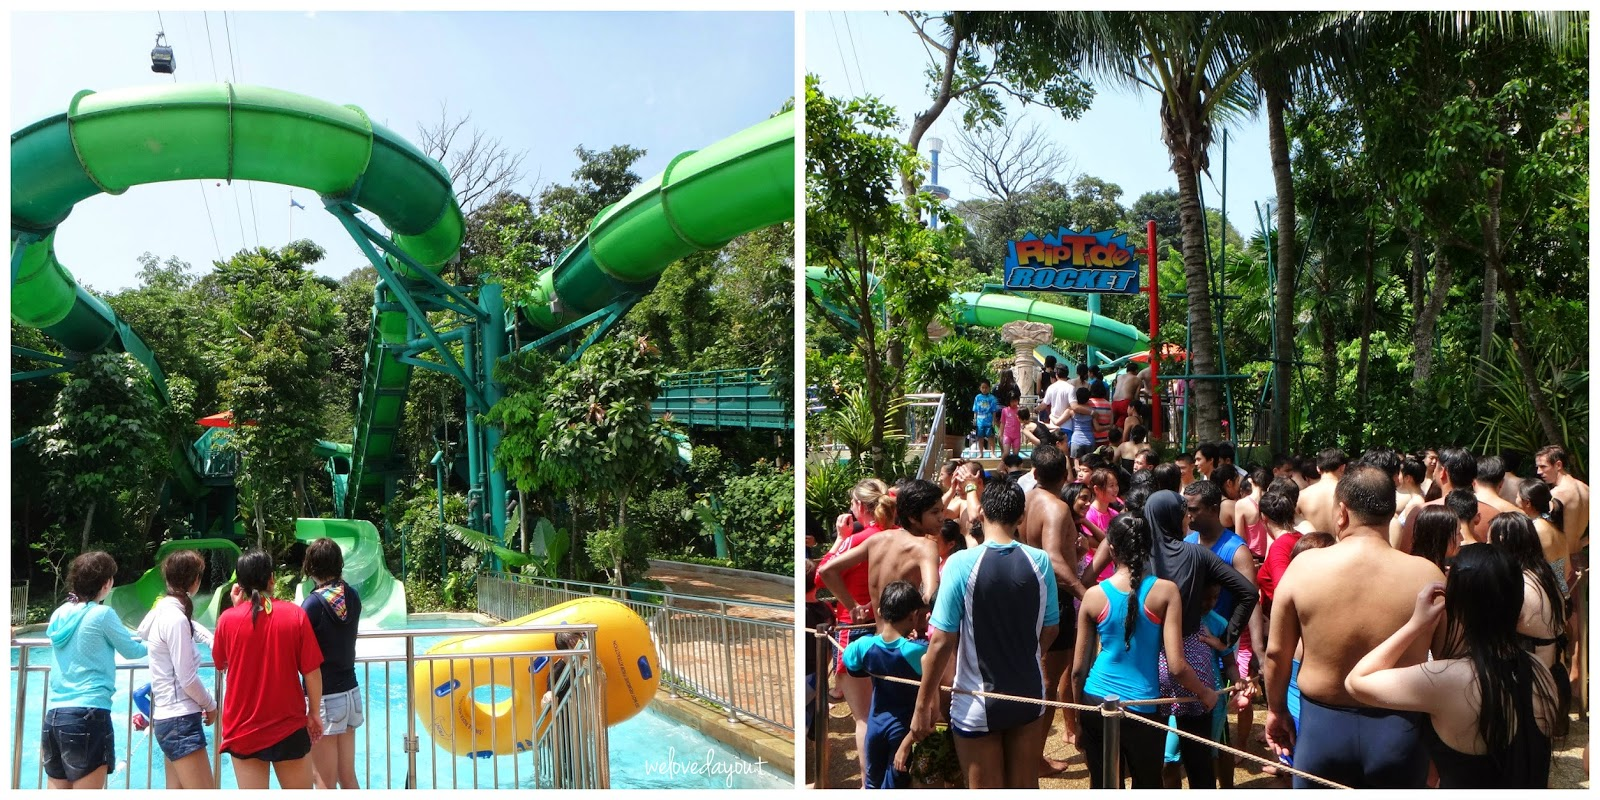 Welovedayout Family Fun At Adventure Cove Waterpark Resorts World Singapore Et Tiket Park Crowded Slides The